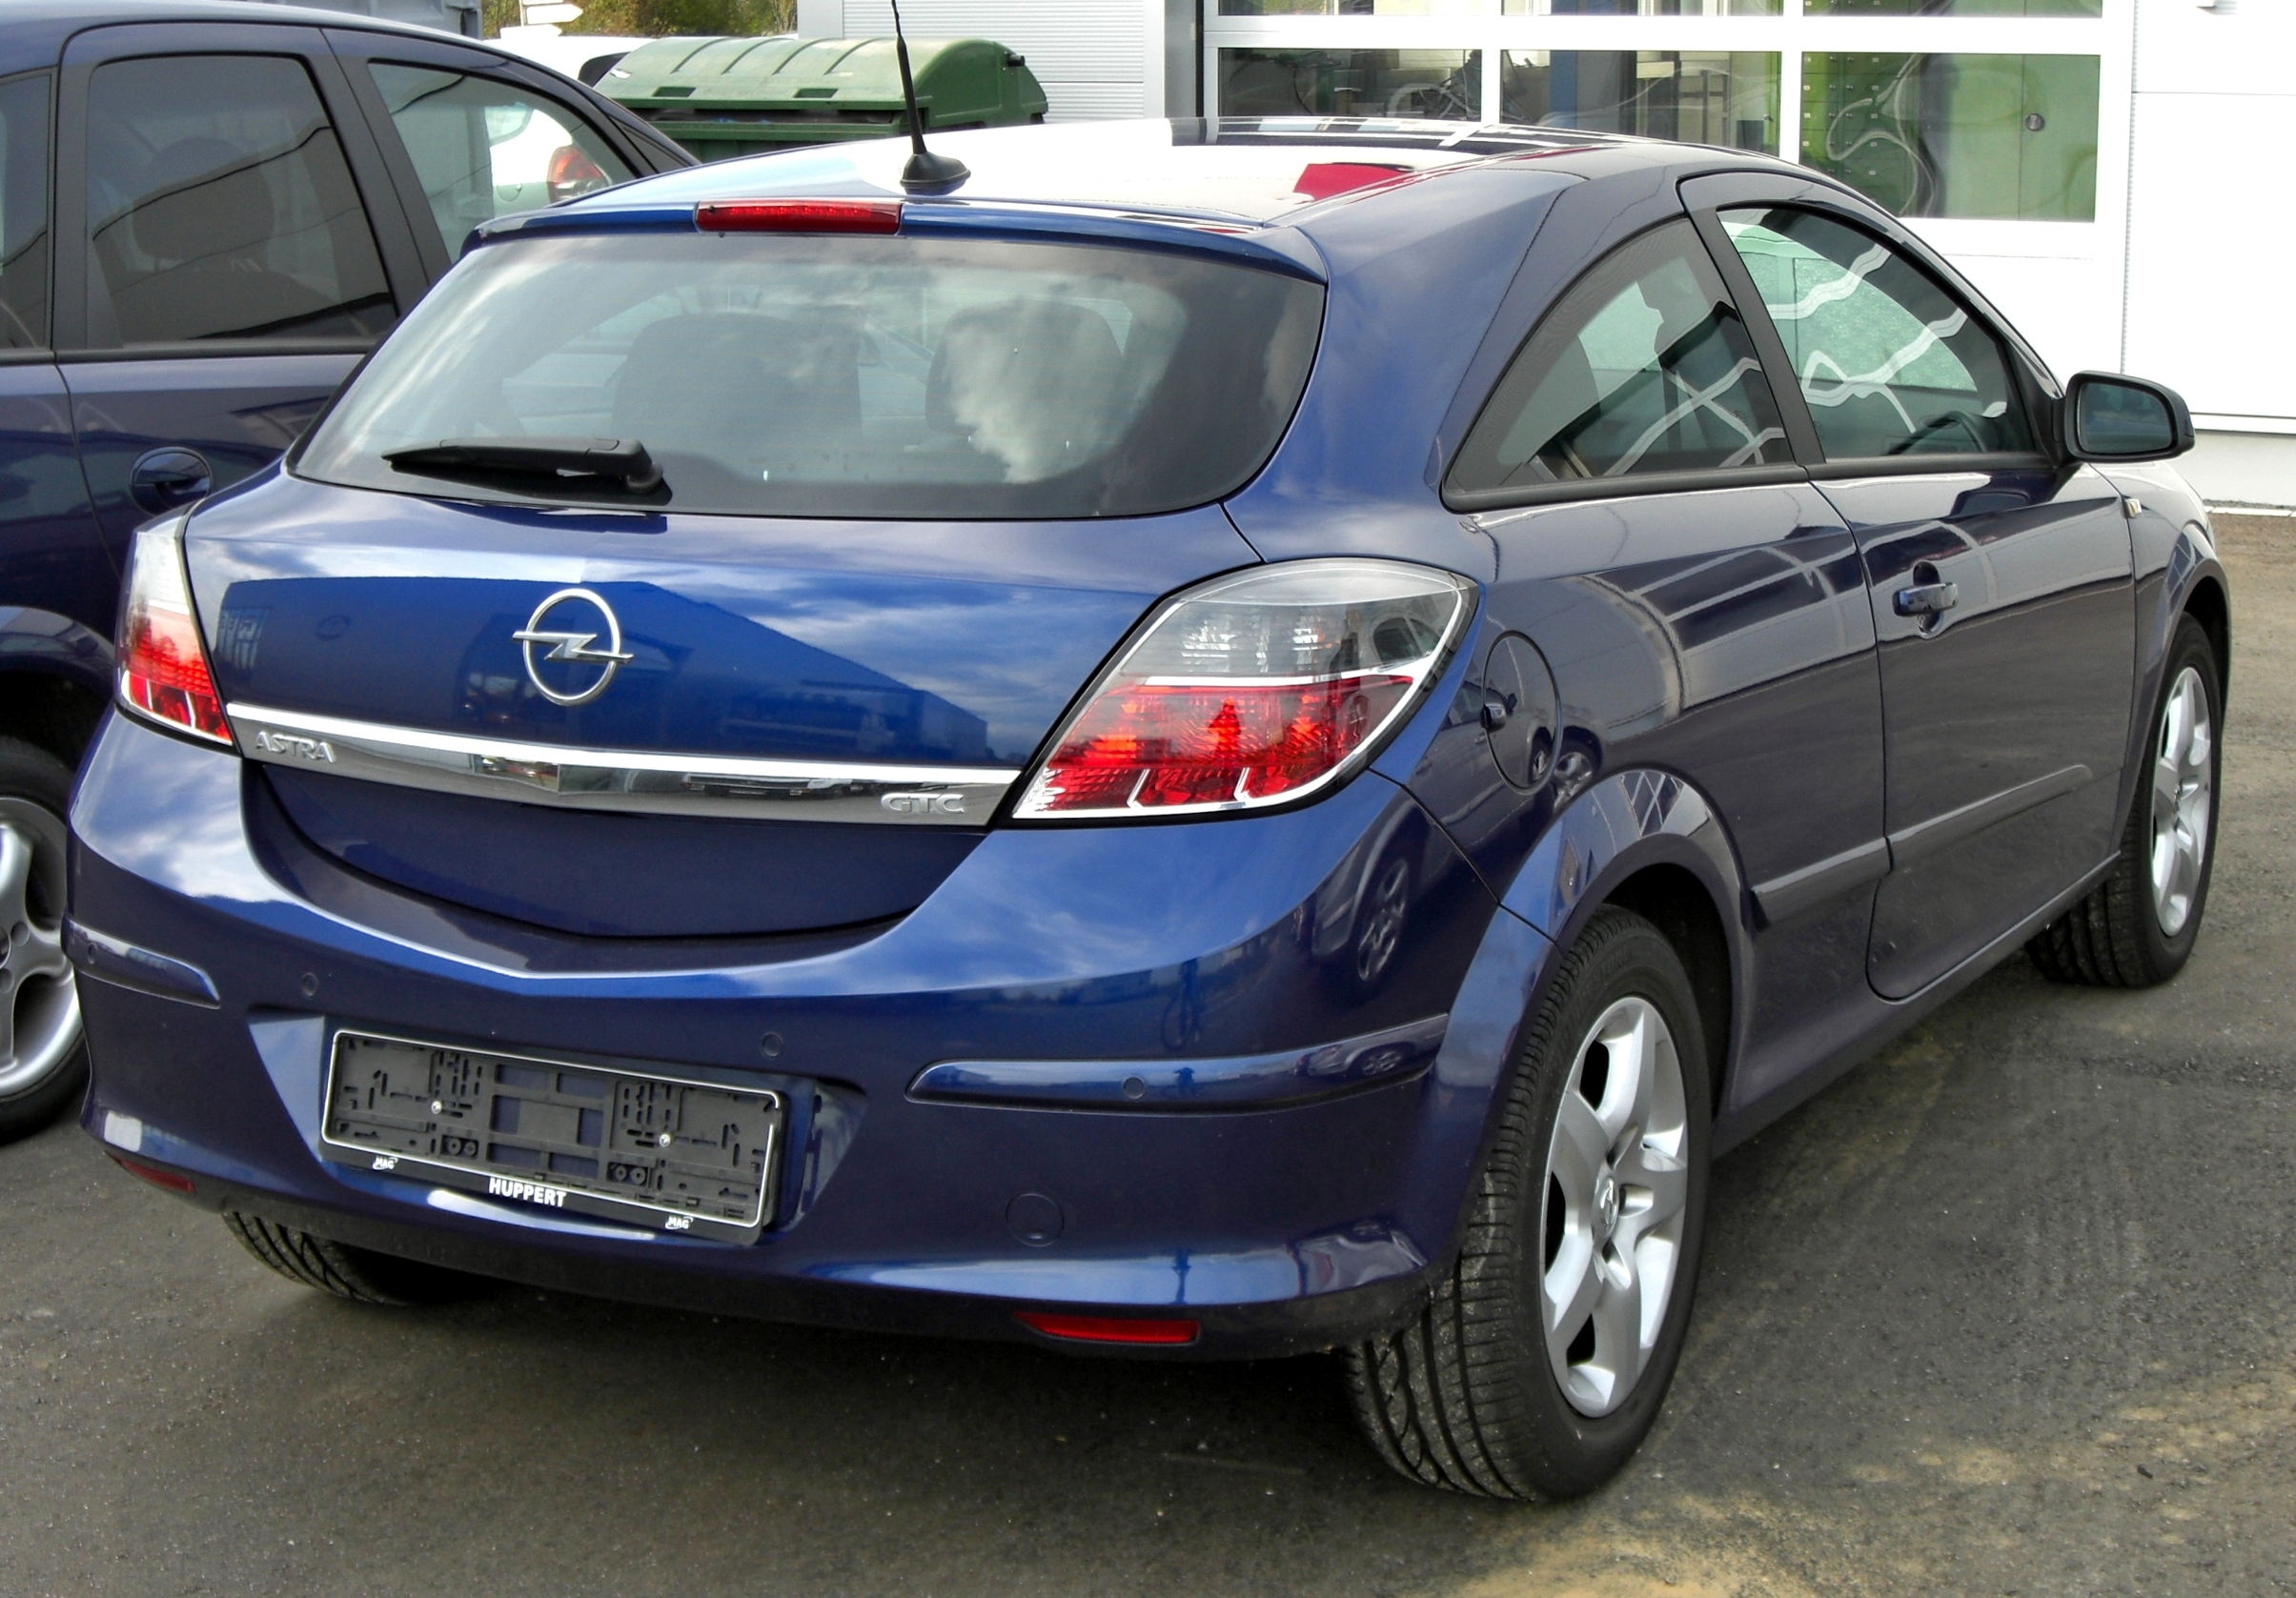 2009 opel astra h gtc pictures information and specs. Black Bedroom Furniture Sets. Home Design Ideas